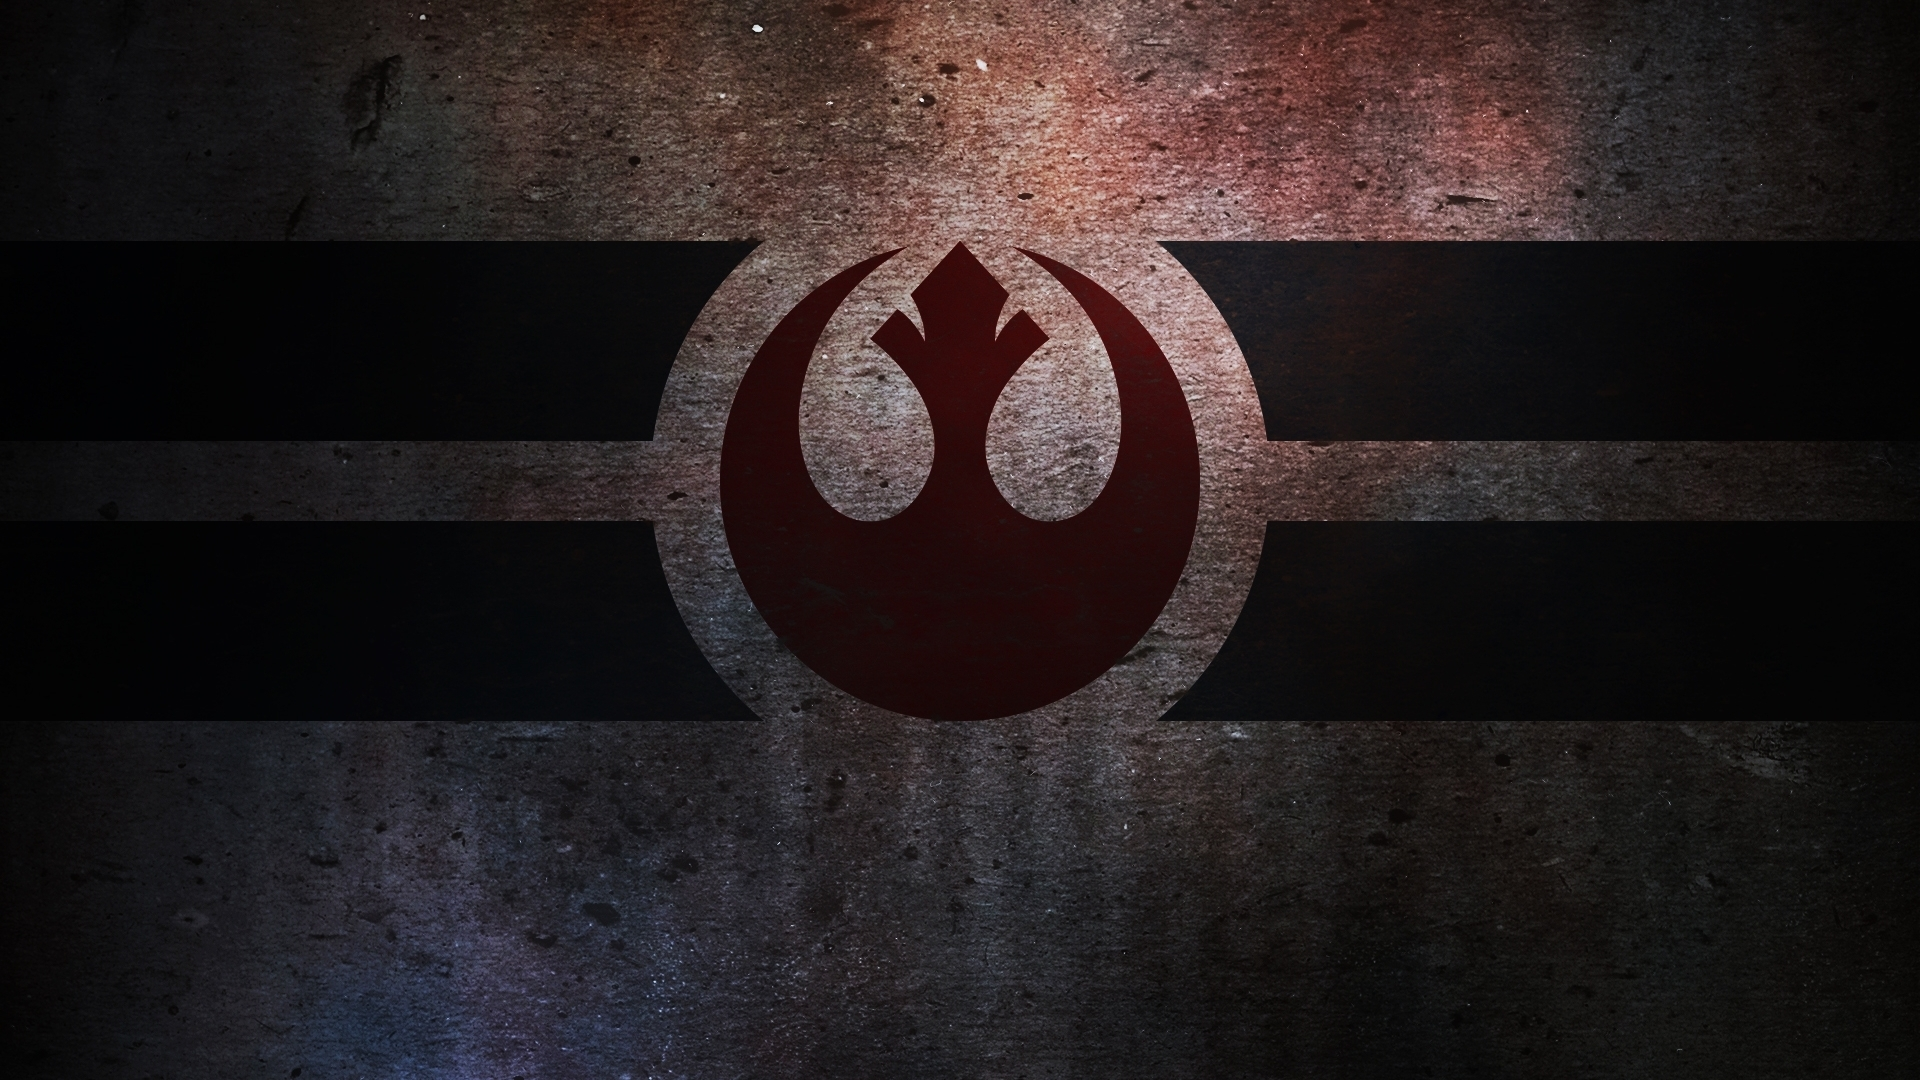 rebel alliance full hd fond d'écran and arrière-plan | 1920x1080